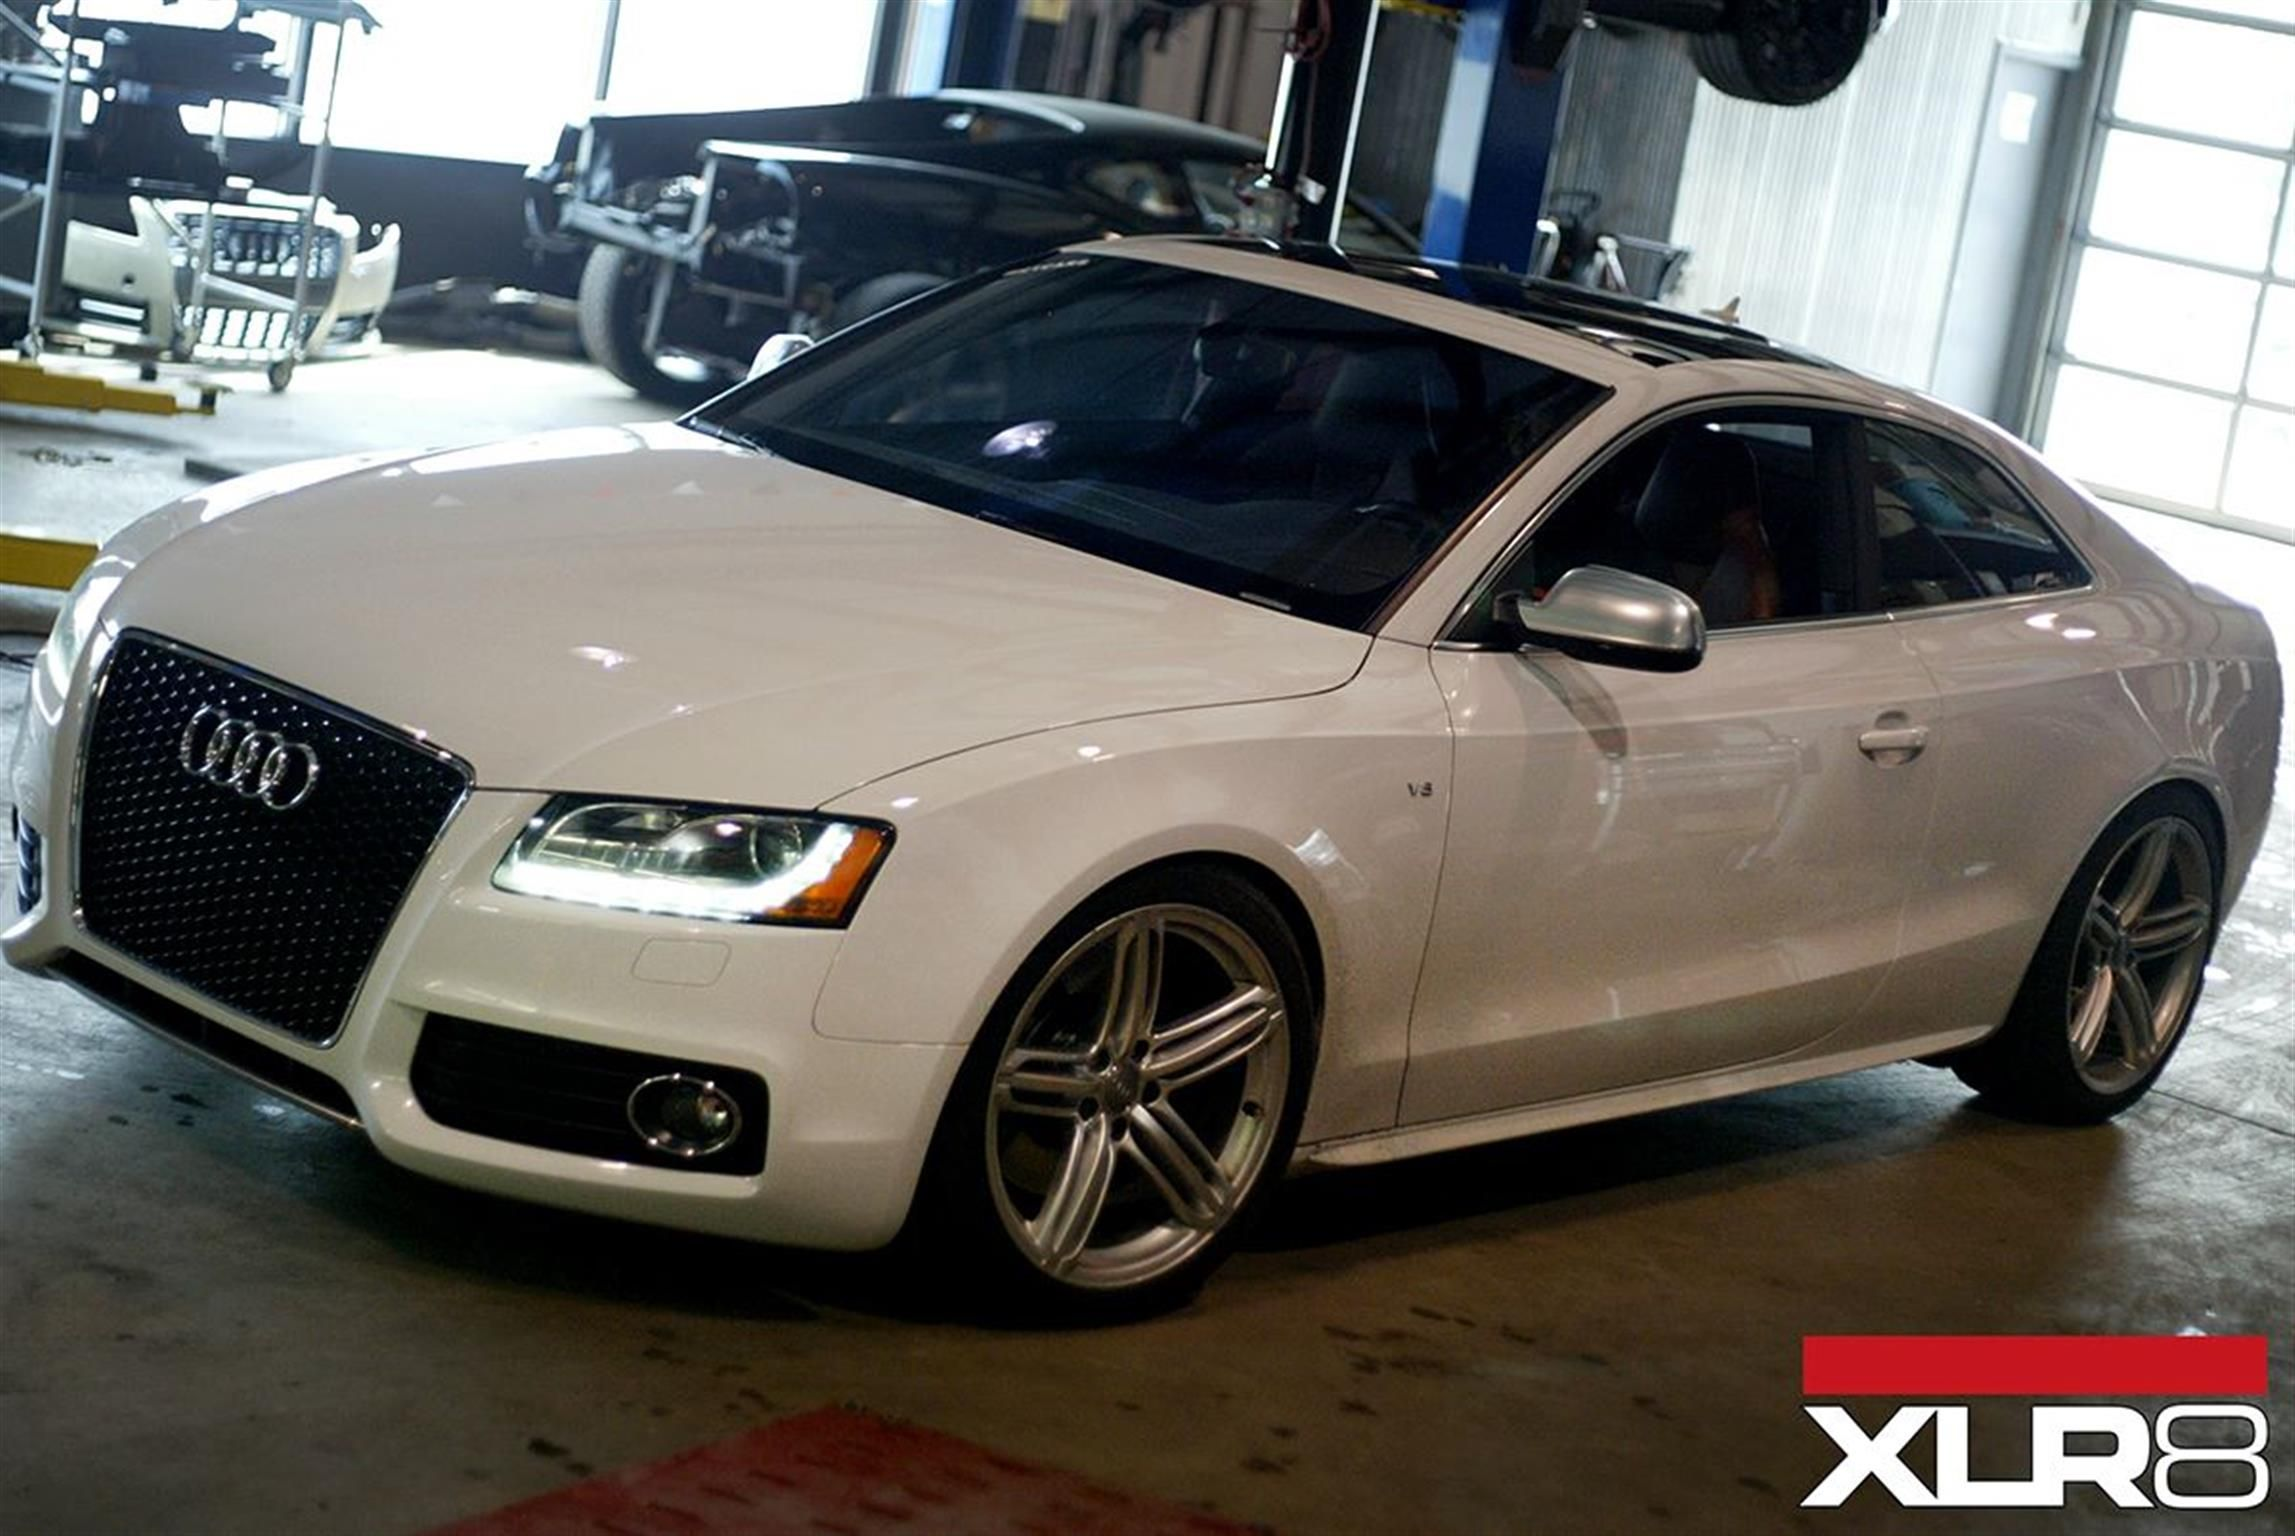 Audi b8 s5 by xlr8 excelerate performance in branford ct click to view more photos